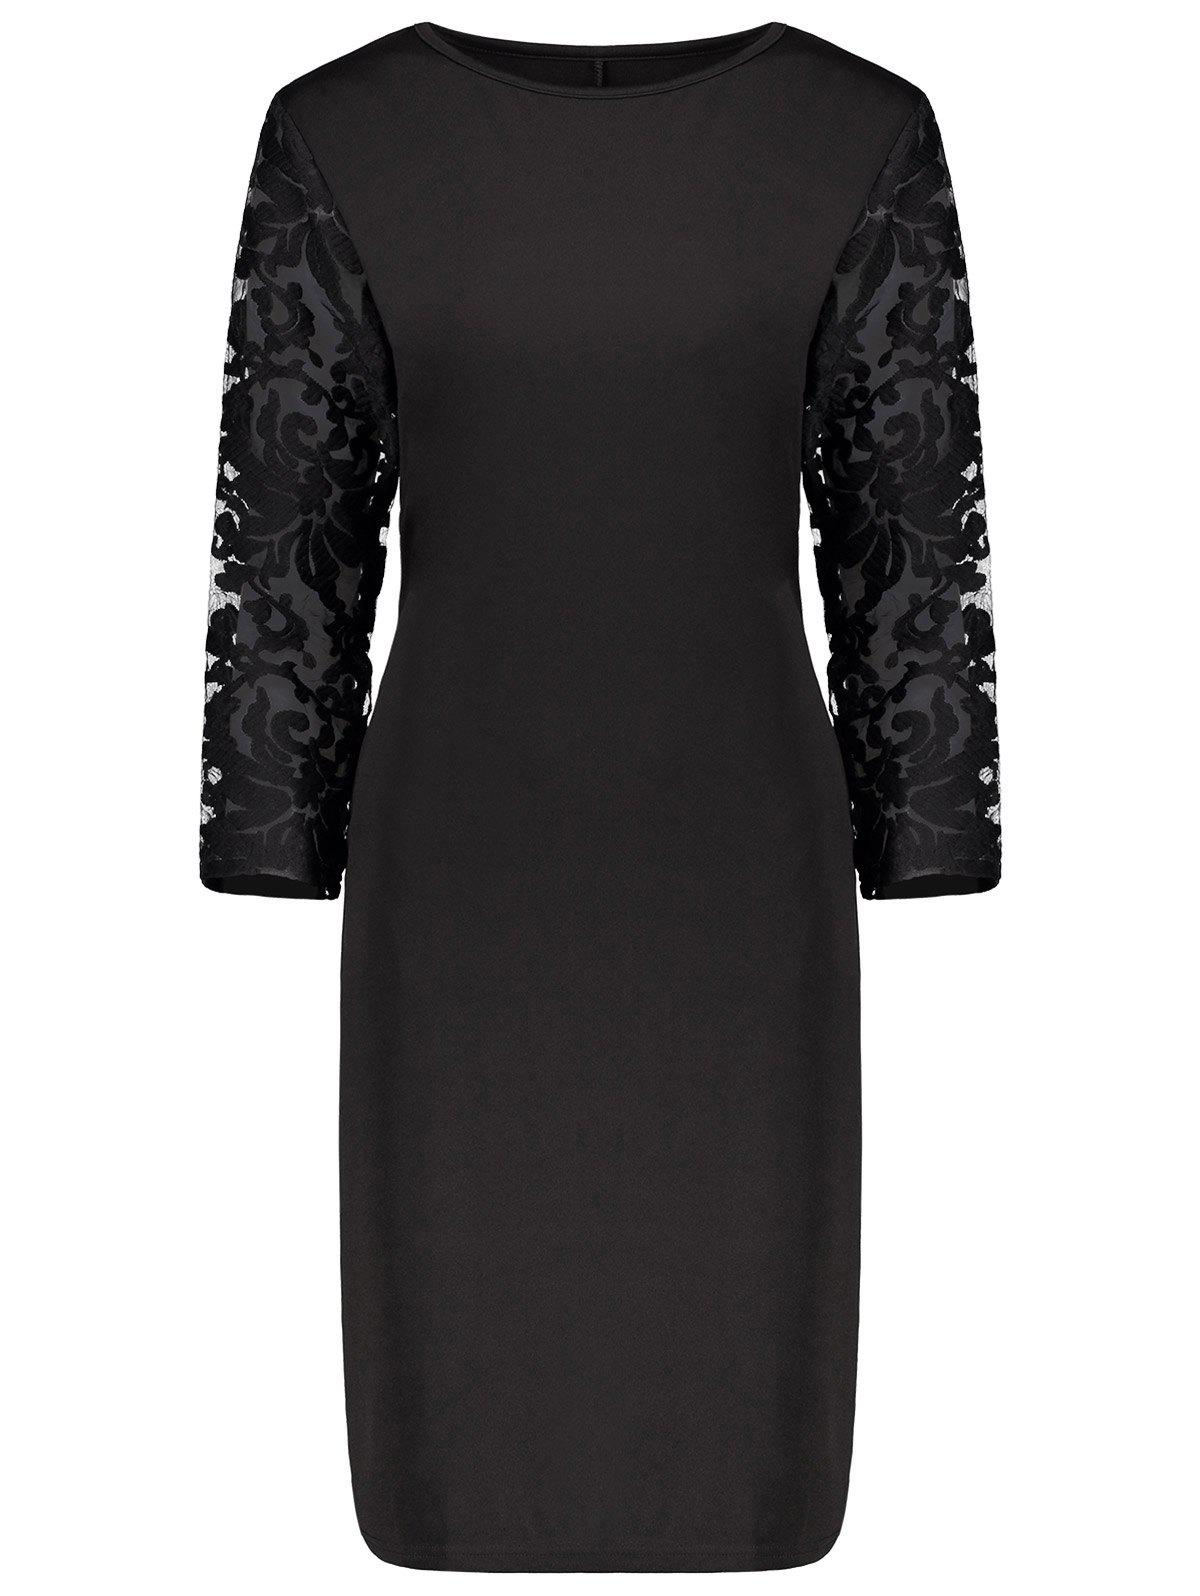 New Plus Size Lace Insert Bodycon Sheath Dress